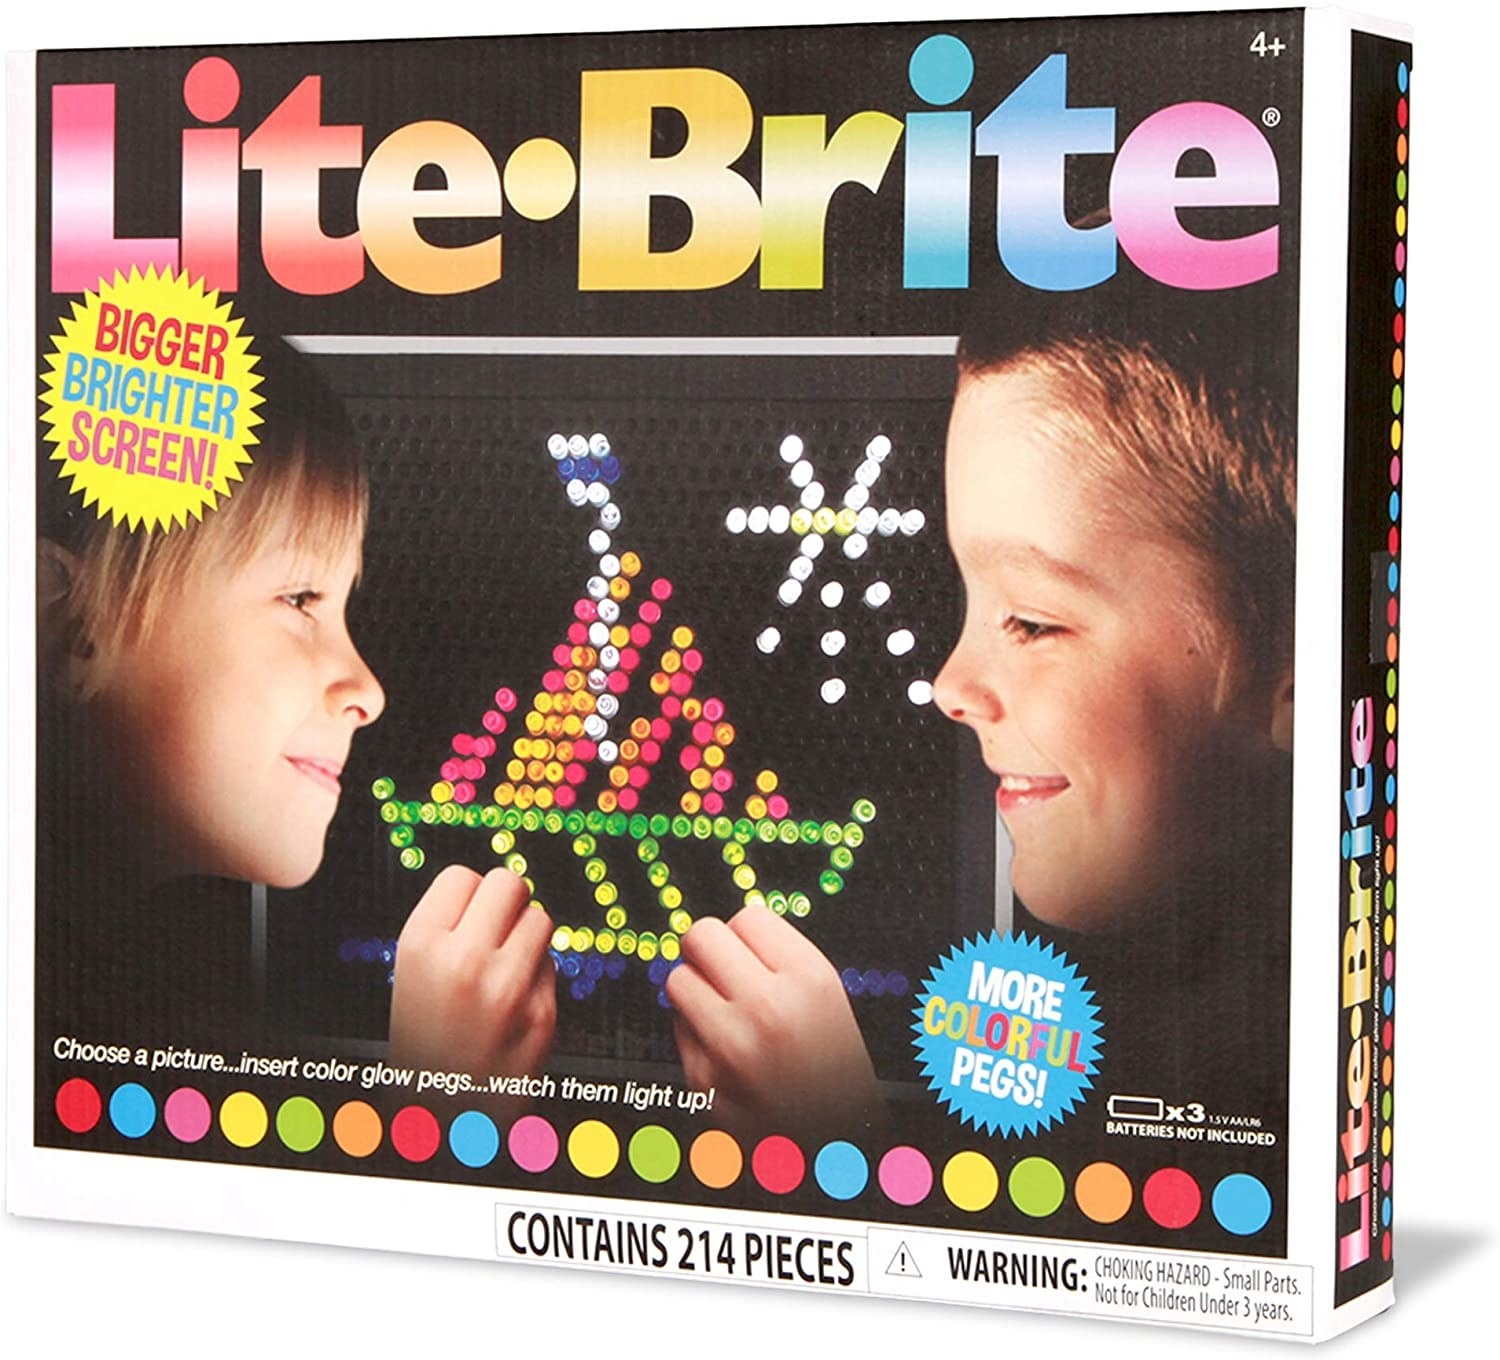 The Lite Bright box which says the kit contains 214 pieces and a bigger, brighter screen